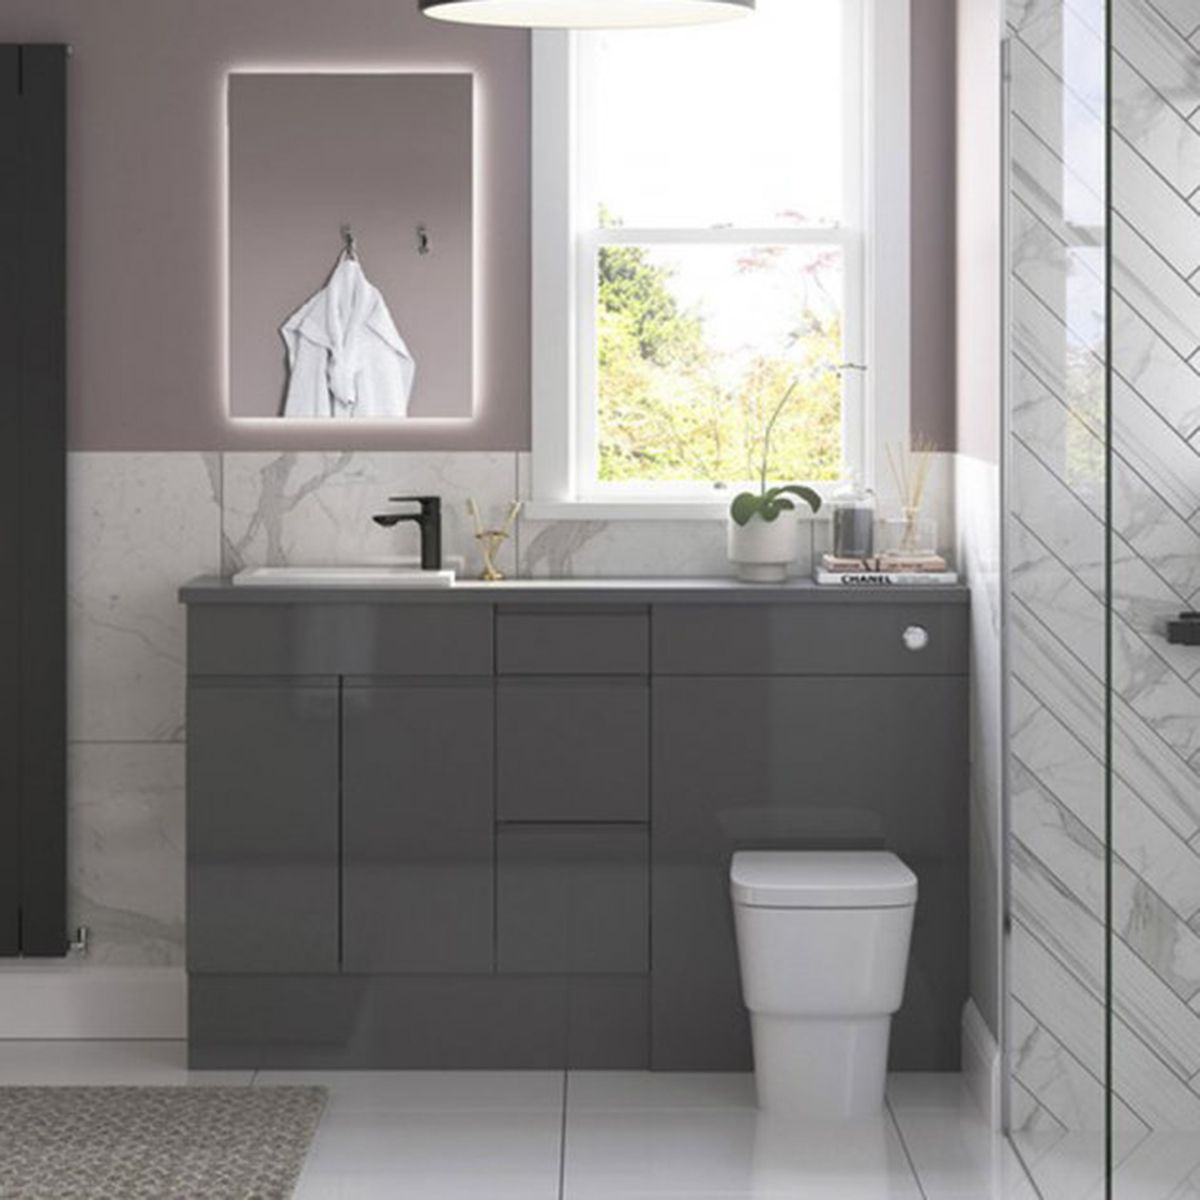 Bathrooms To Love White Compact Inset Basin 430 x 260mm  1